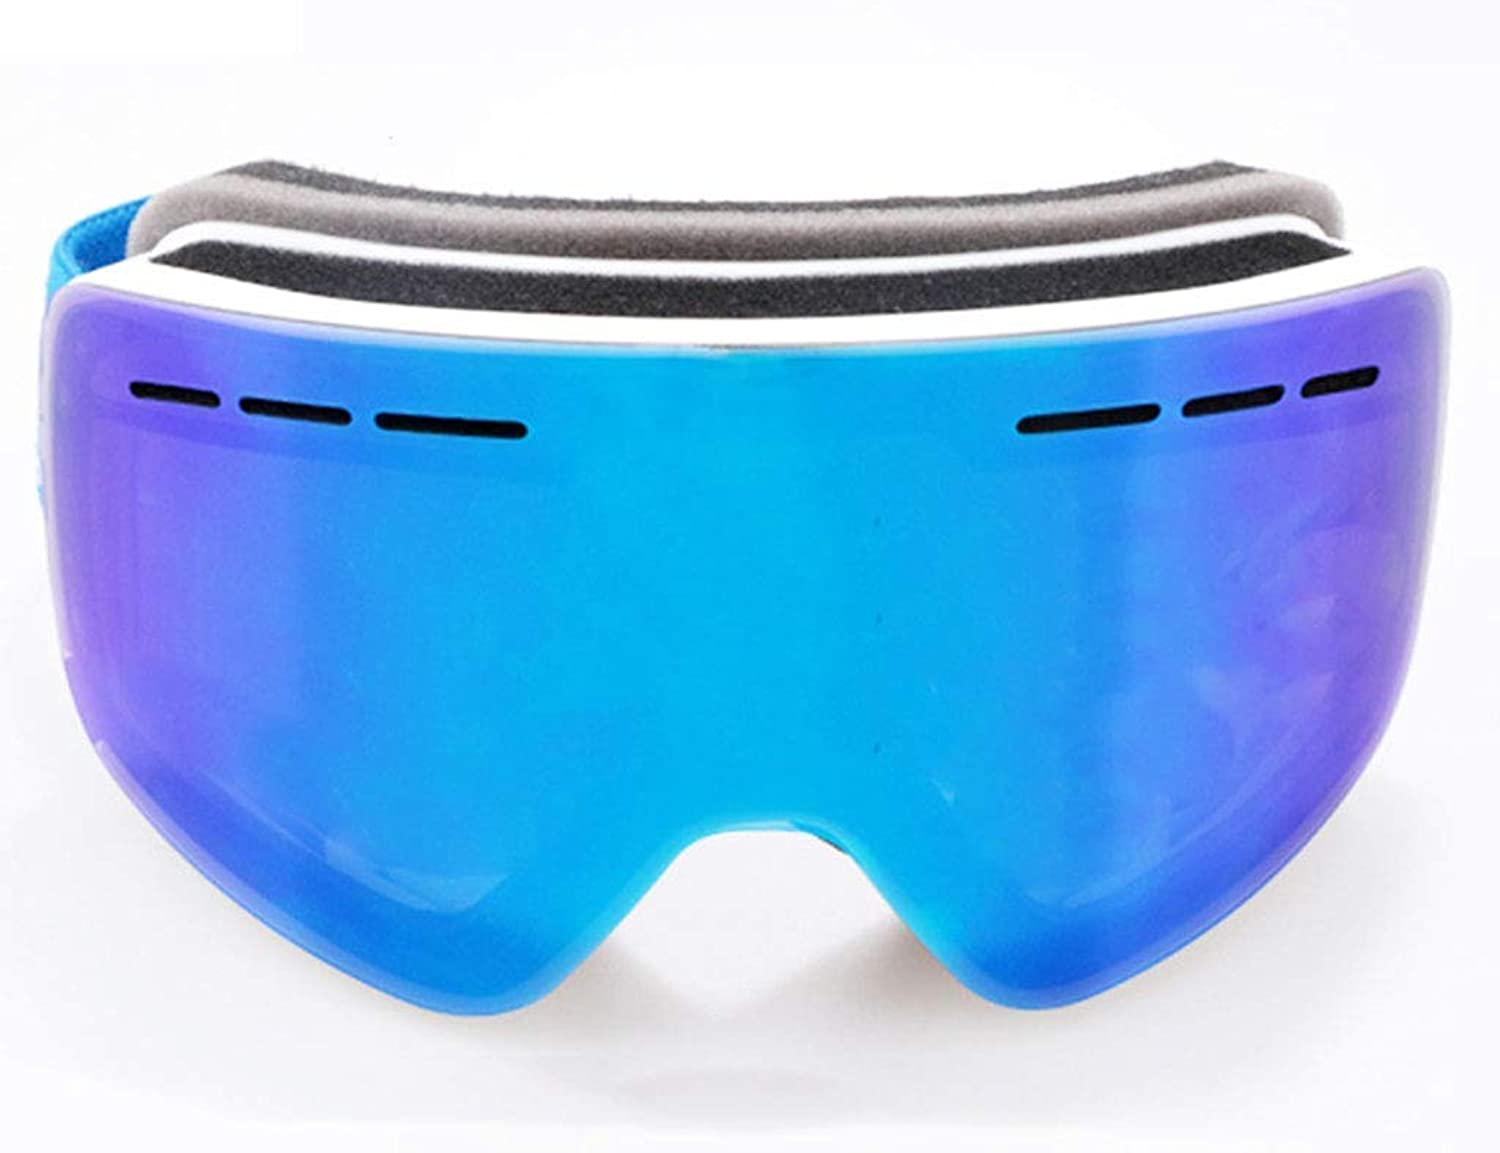 Ski Goggles Sports Glasses Glasses Cylindrical Double-Layer Anti-Fog Goggles Magnet Ski GogglesJBP43 (color   D)